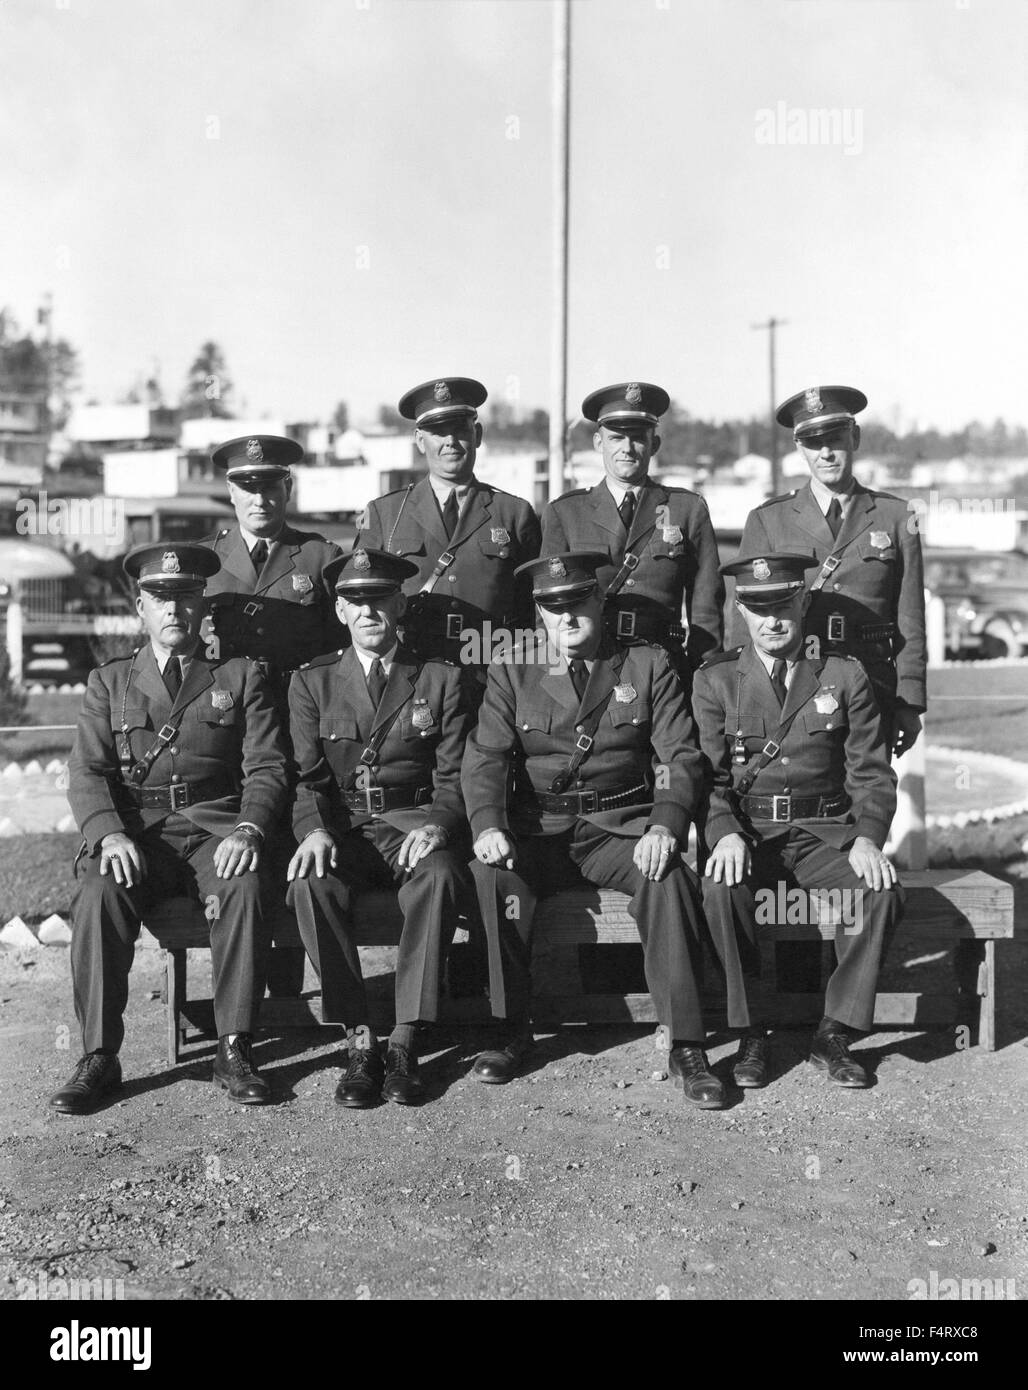 AEC Atomic Energy Commision Patrol Officers. 1944. Oak Ridge. The town of Oak Ridge was established by the Army - Stock Image